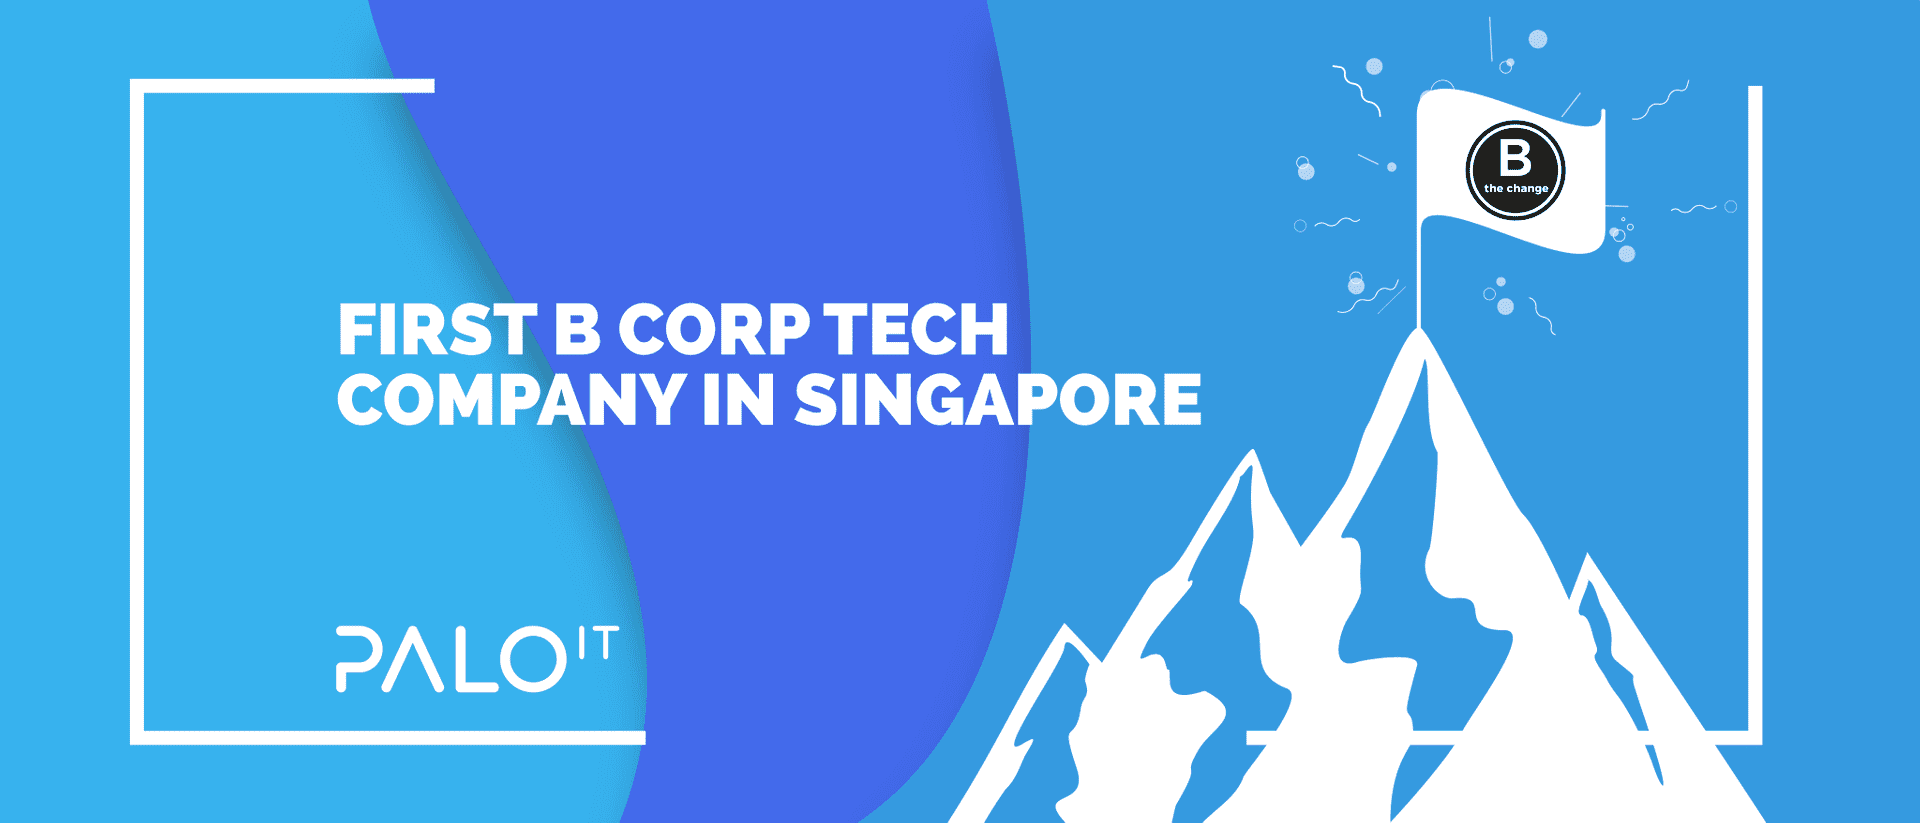 Leading the Change as Singapore's First B Corp Tech Company